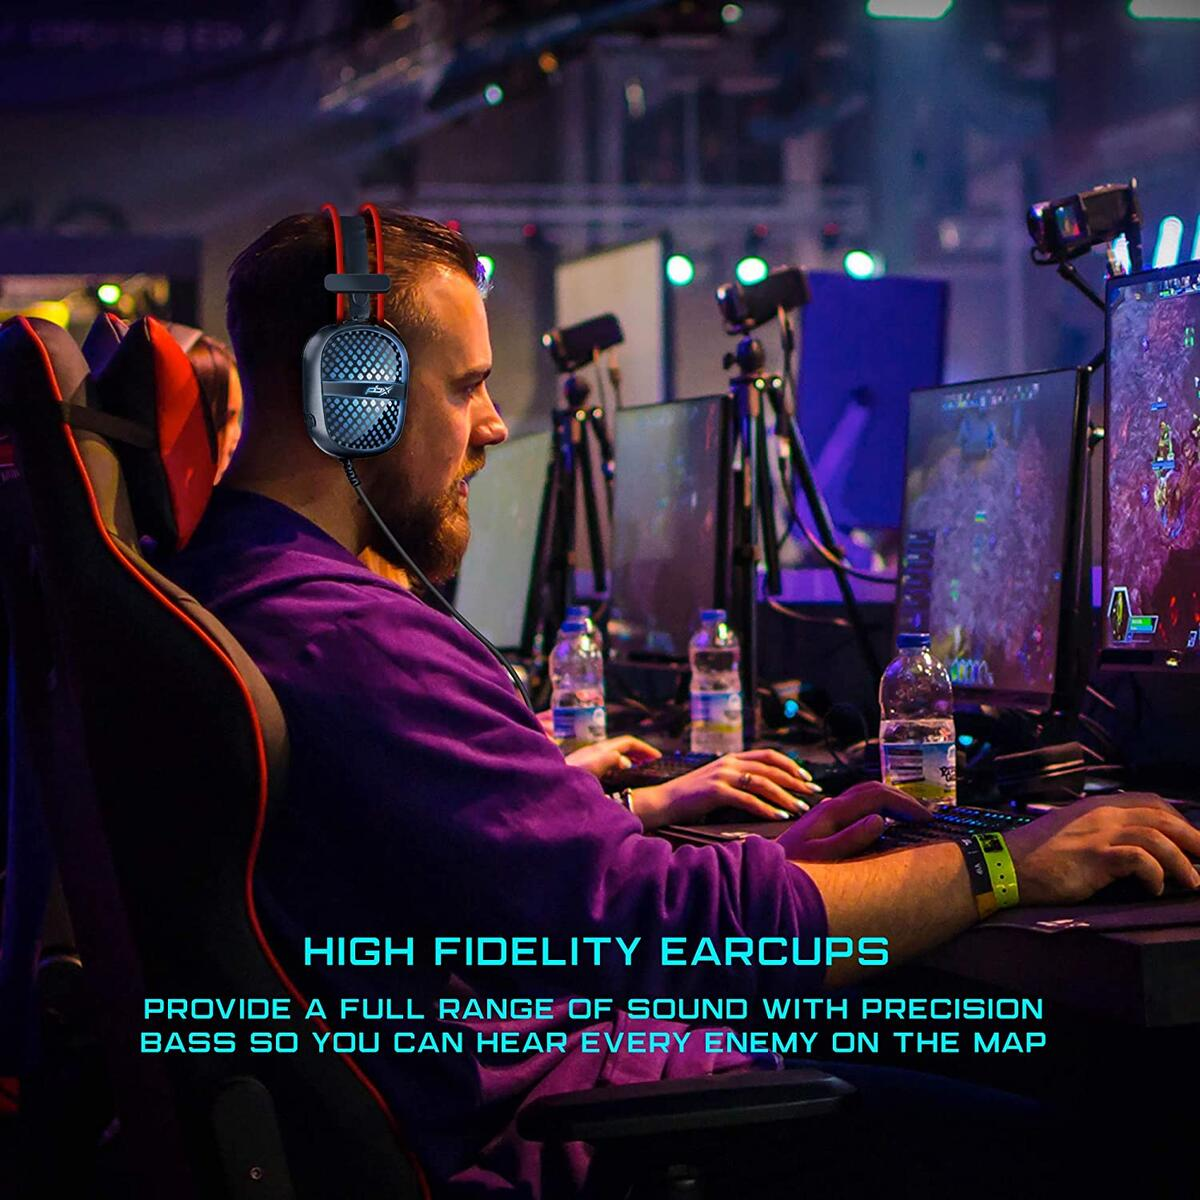 Pulse 7 Elite Gaming Headset, Red, Green, Blue LED Lights, Built-in Microphone for PC and Gaming Consoles